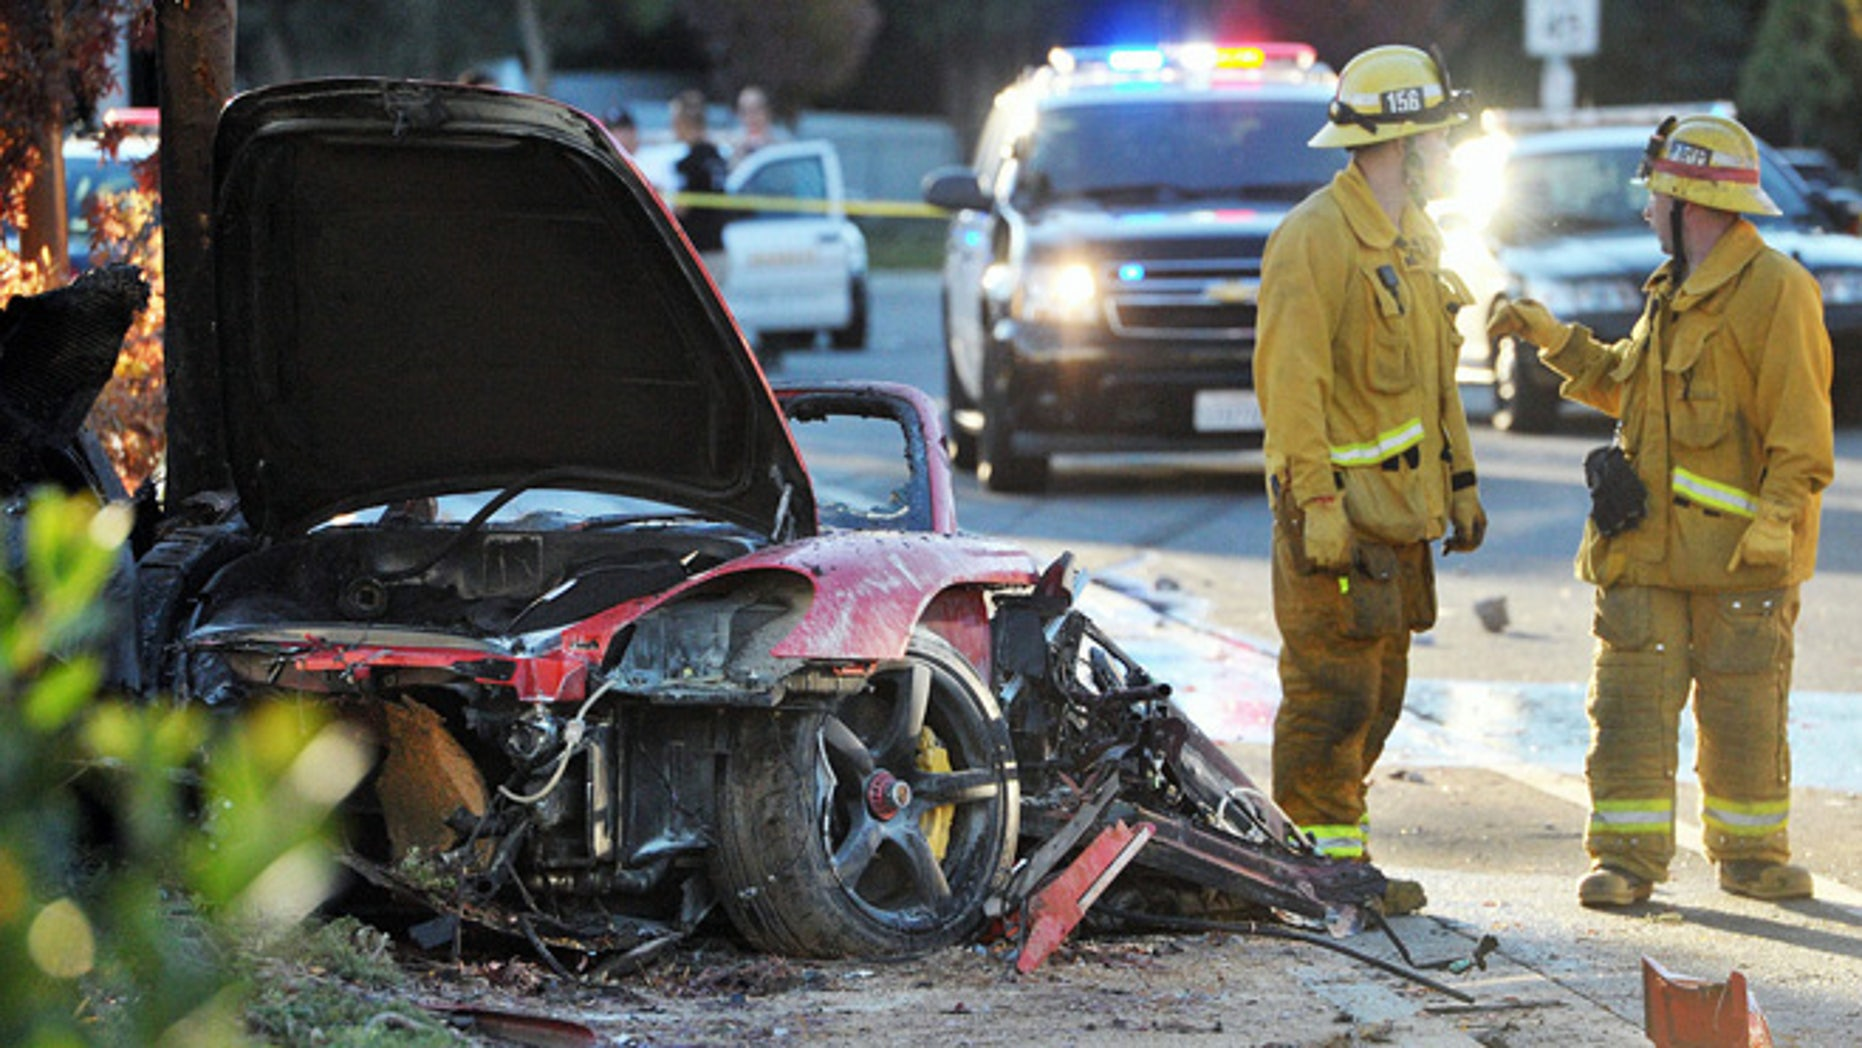 "FILE - In this Nov. 30, 2013 file photo, firefighters stand near the wreckage of a Porsche that hit a light pole and burned on Hercules Street near Kelly Johnson Parkway in Valencia, Calif., a crash that killed actor Paul Walker and his friend Roger Rodas.  A law enforcement official with knowledge of the investigation told The Associated Press Wednesday, Dec. 18, 2013, that the car lost control due to ""speed, and speed alone."" Investigators have found no evidence that the Porsche carrying the ""Fast & Furious"" actor had mechanical problems before it crashed. (AP Photo/The Santa Clarita Valley Signal, Dan Watson, File)"